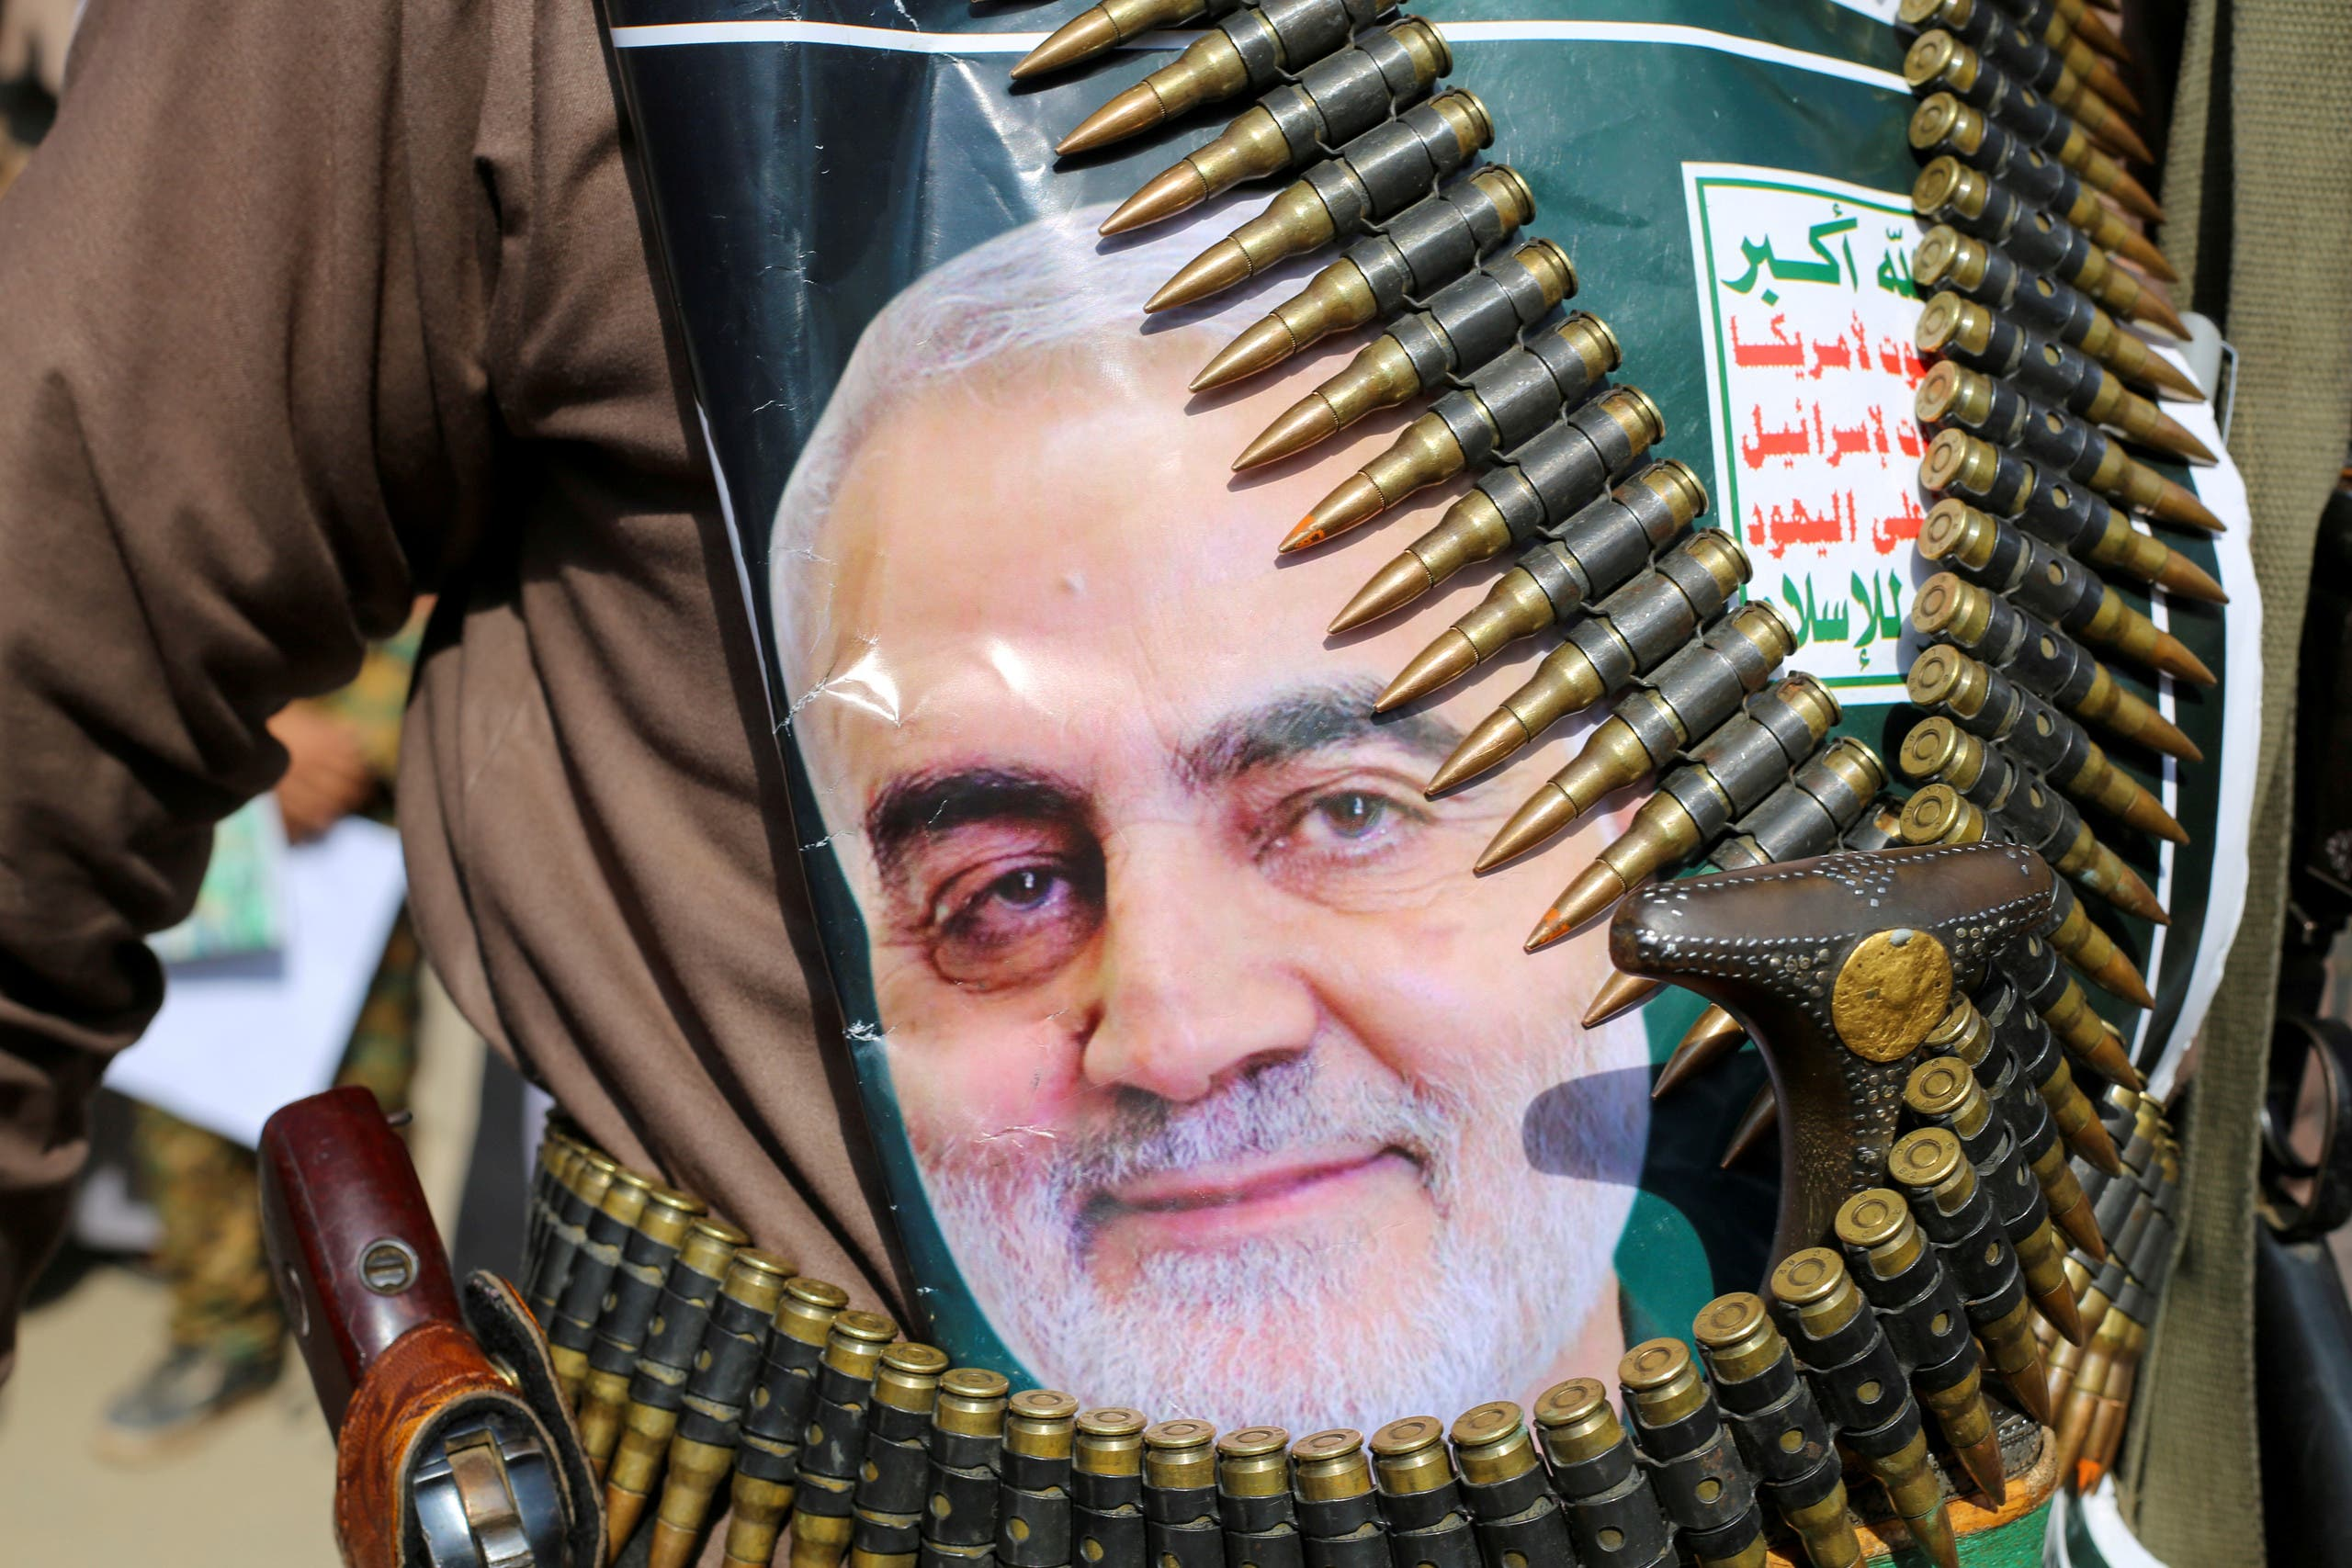 FILE PHOTO: A supporter of the Houthis has a poster attached to his waist of Iranian Major-General Qassem Soleimani, head of the elite Quds Force, who was killed in an air strike at Baghdad airport, during a rally to denounce the U.S. killing, in Saada, Yemen January 6, 2020. The writing on the poster reads: God is the Greatest, Death to America, Death to Israel, Curse on the Jews, Victory to Islam. (Reuters)